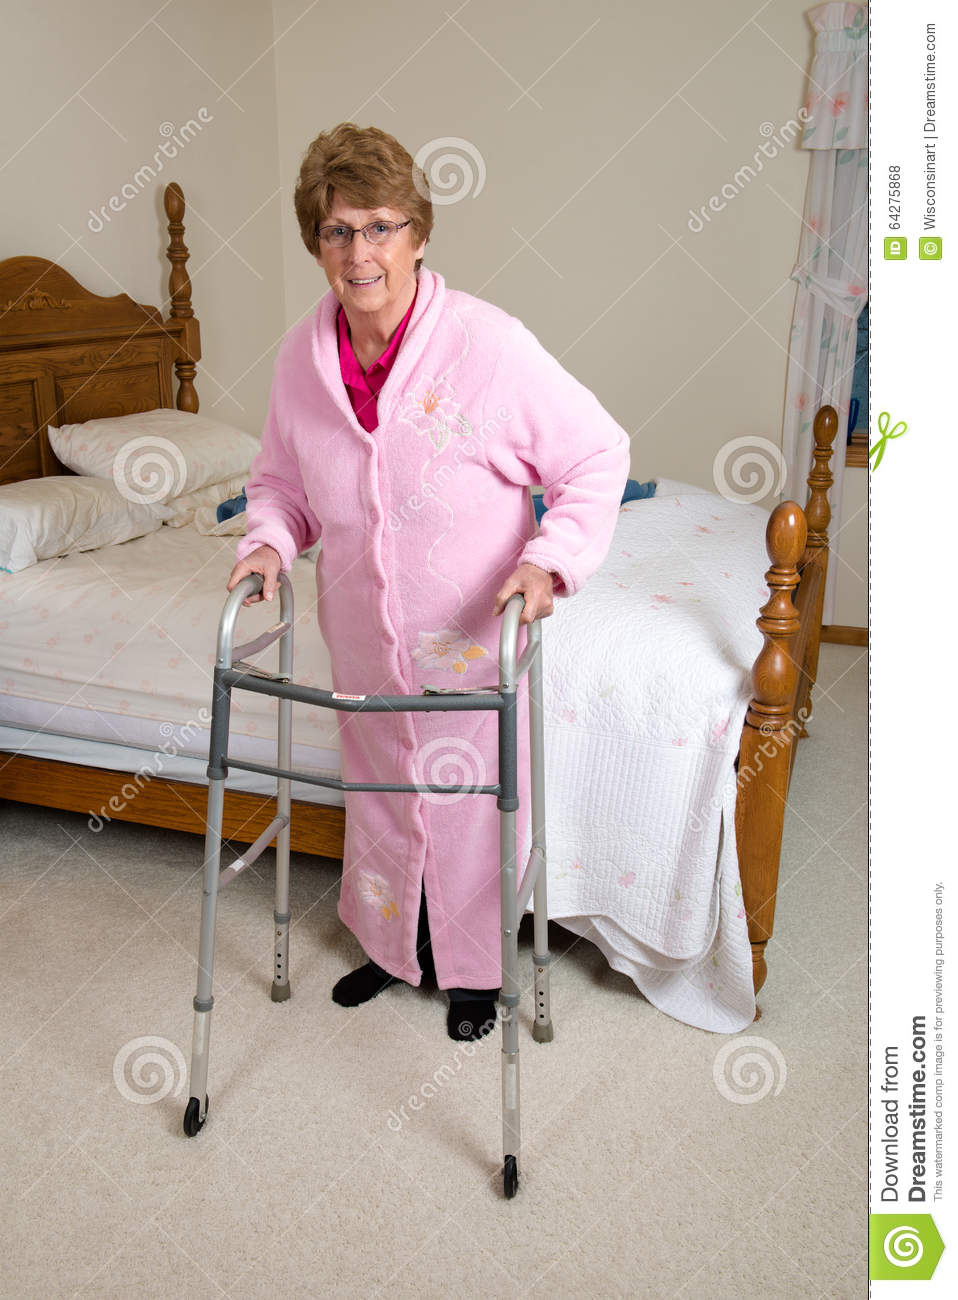 Assisted Living Nursing Home Elderly Woman Stock Photo